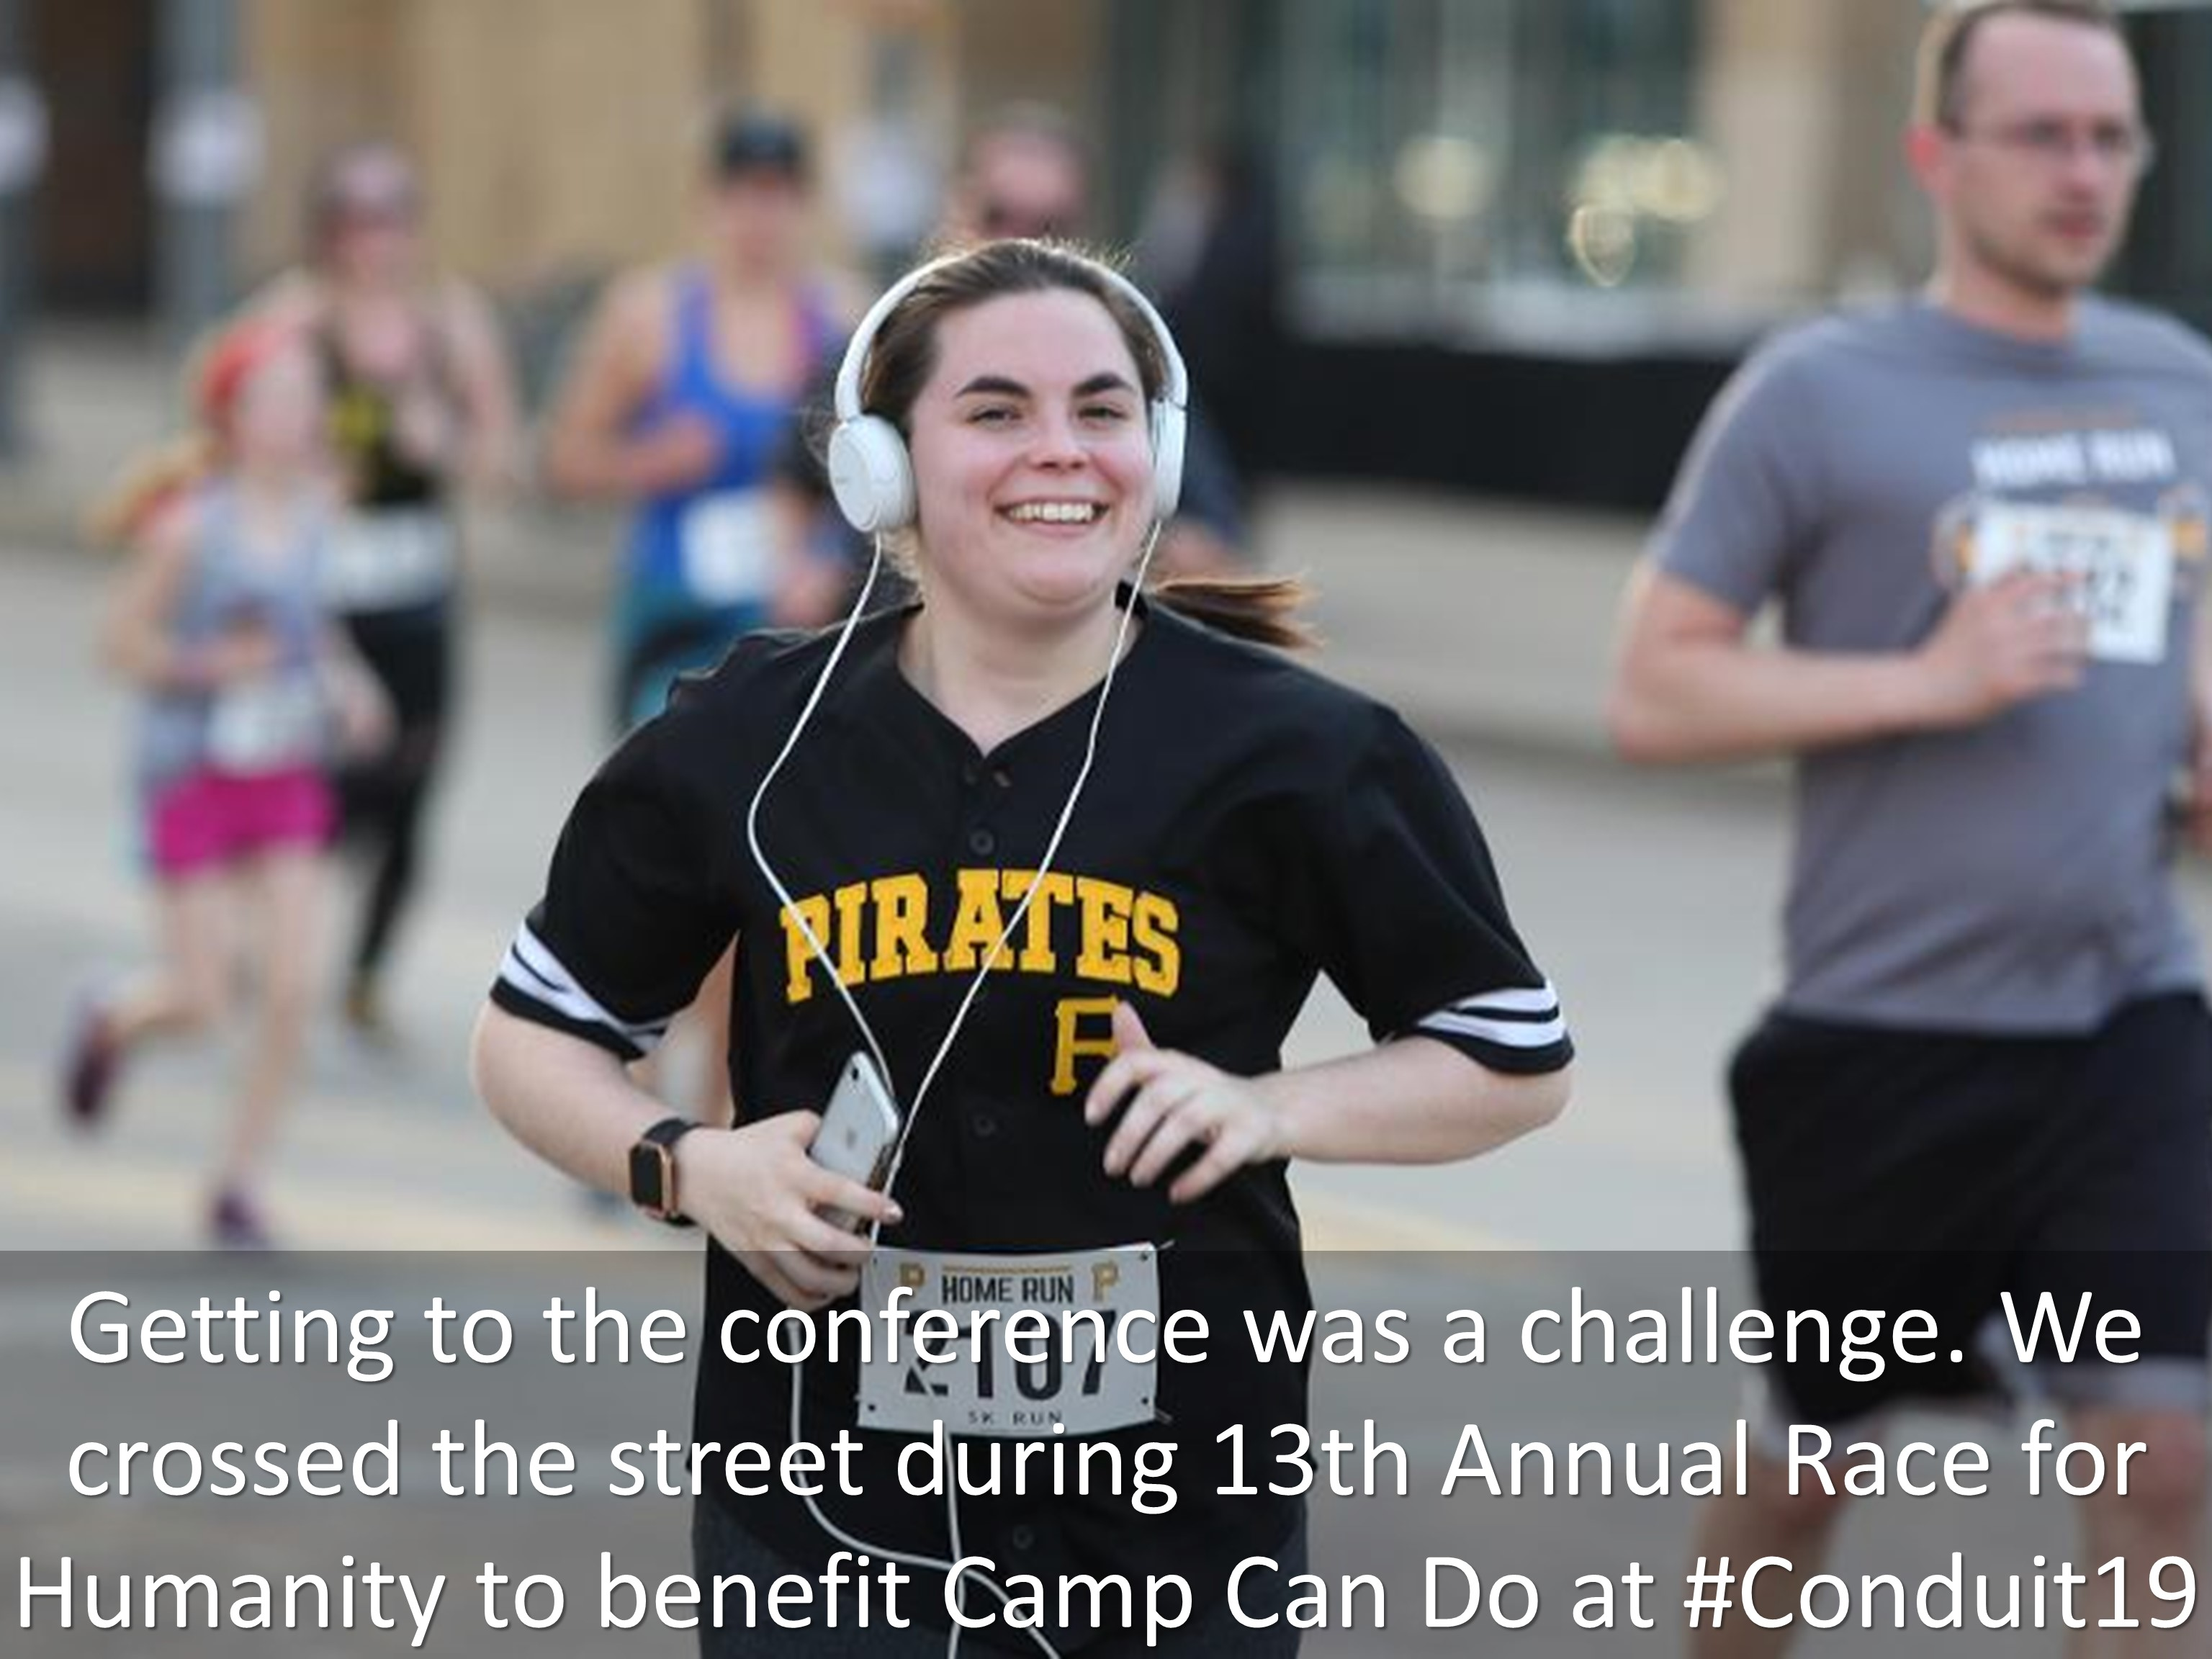 16 Getting to the conference was a challenge. We crossed the street during 13th Annual Race for Humanity to benefit Camp Can Do at Conduit19